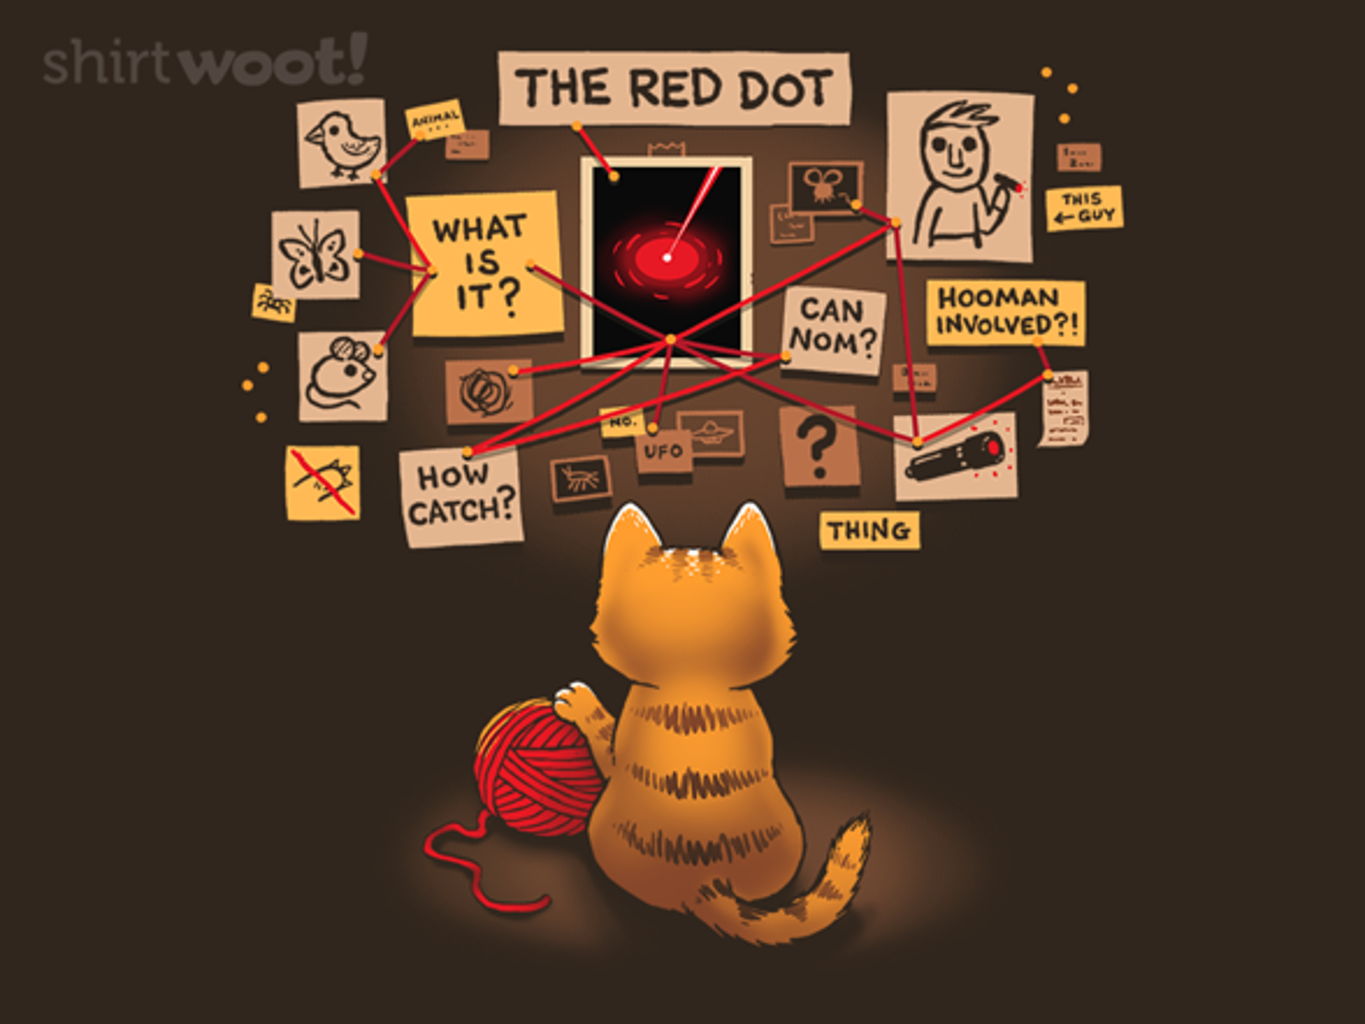 Woot!: To Catch a Dot